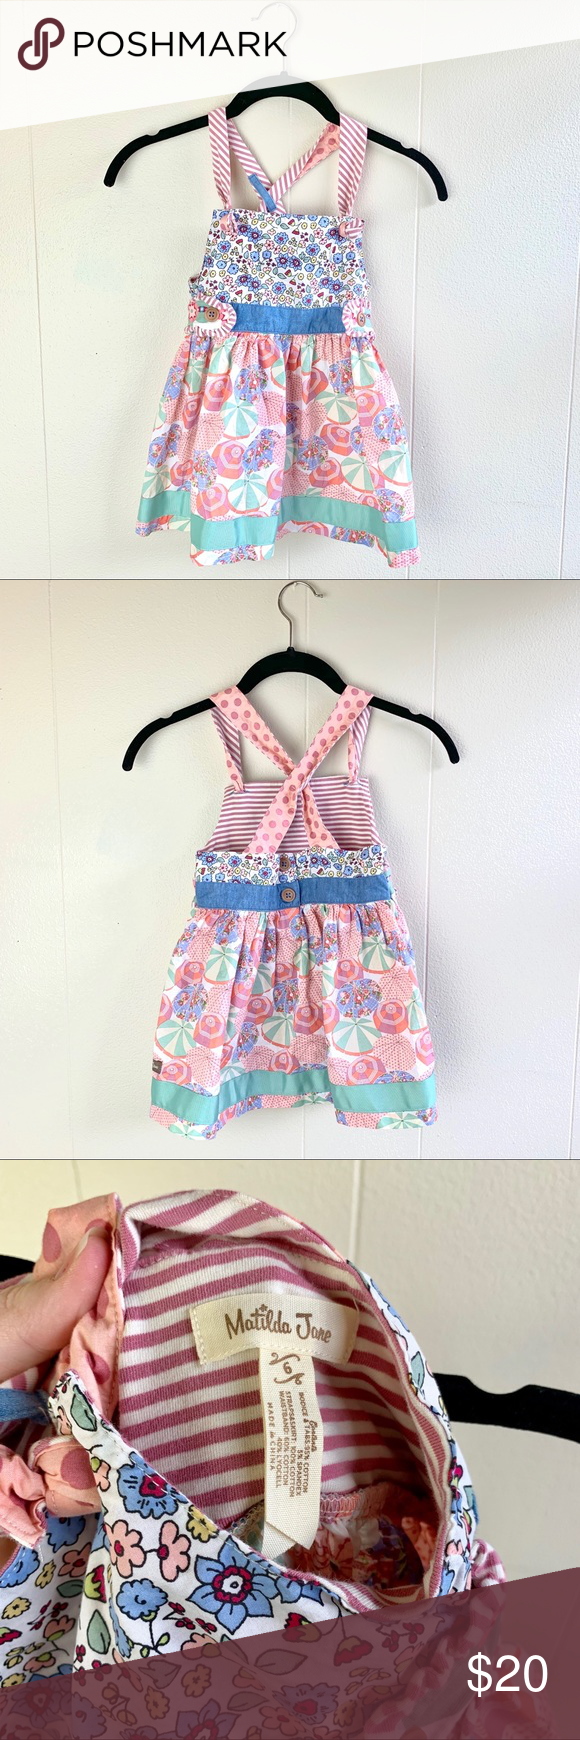 Matilda Jane floral umbrella summer dress / top Super cute umbrella and floral pattern dress Matilda Jane Dresses Casual #cuteumbrellas Matilda Jane floral umbrella summer dress / top Super cute umbrella and floral pattern dress Matilda Jane Dresses Casual #cuteumbrellas